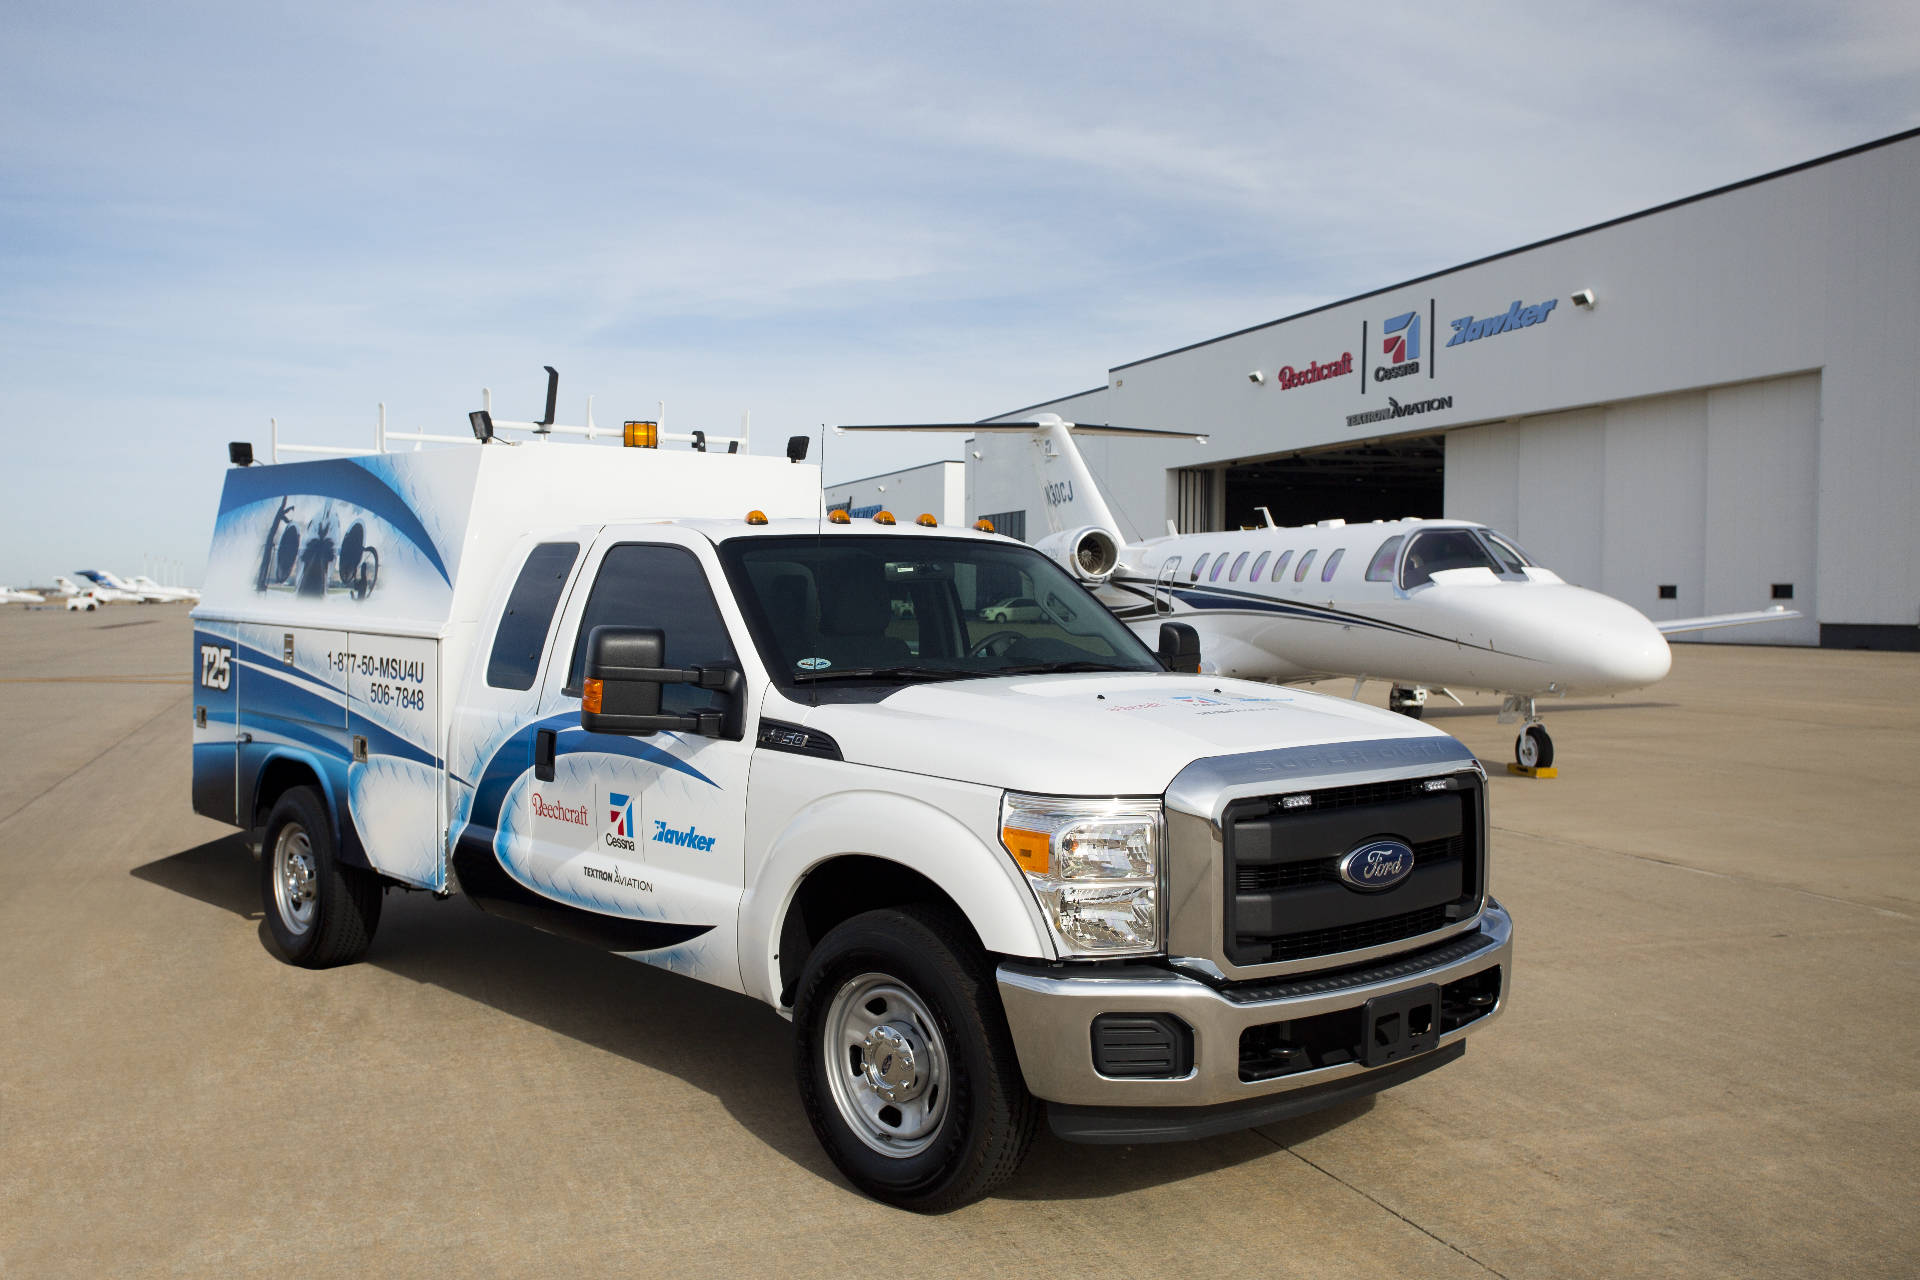 Mobile Service truck supporting aircraft